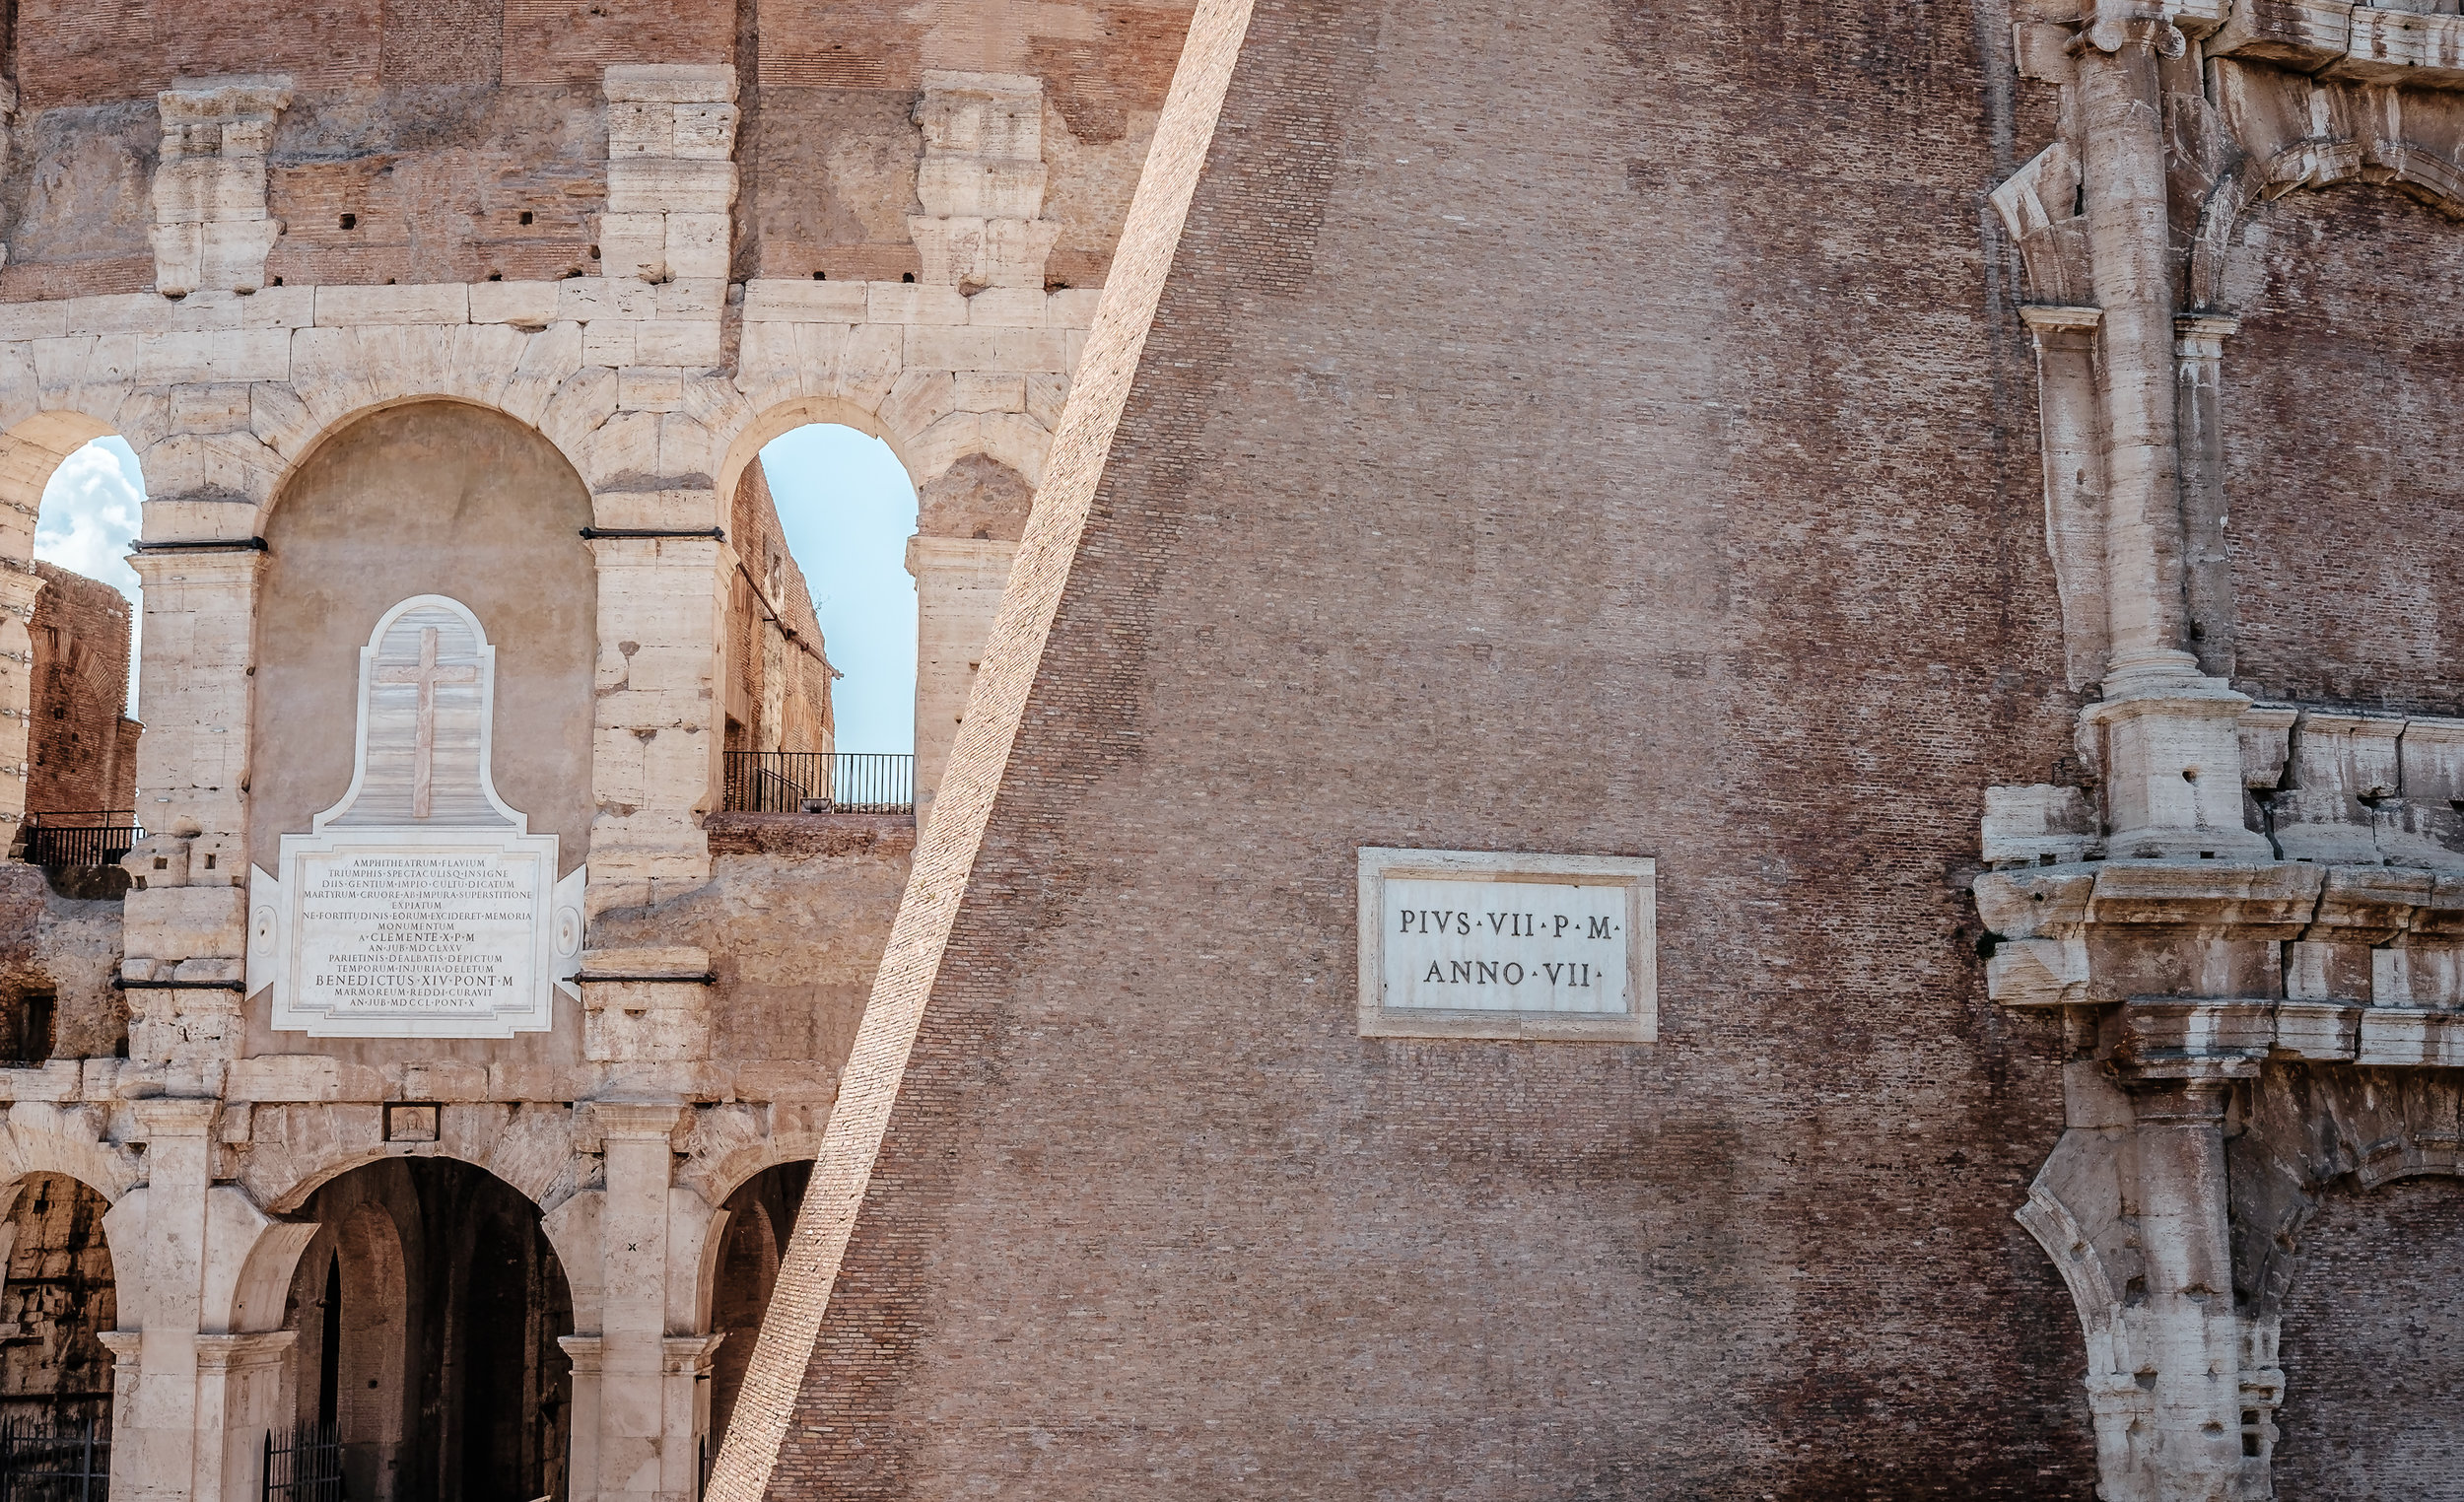 The Colosseum; Rome, Italy